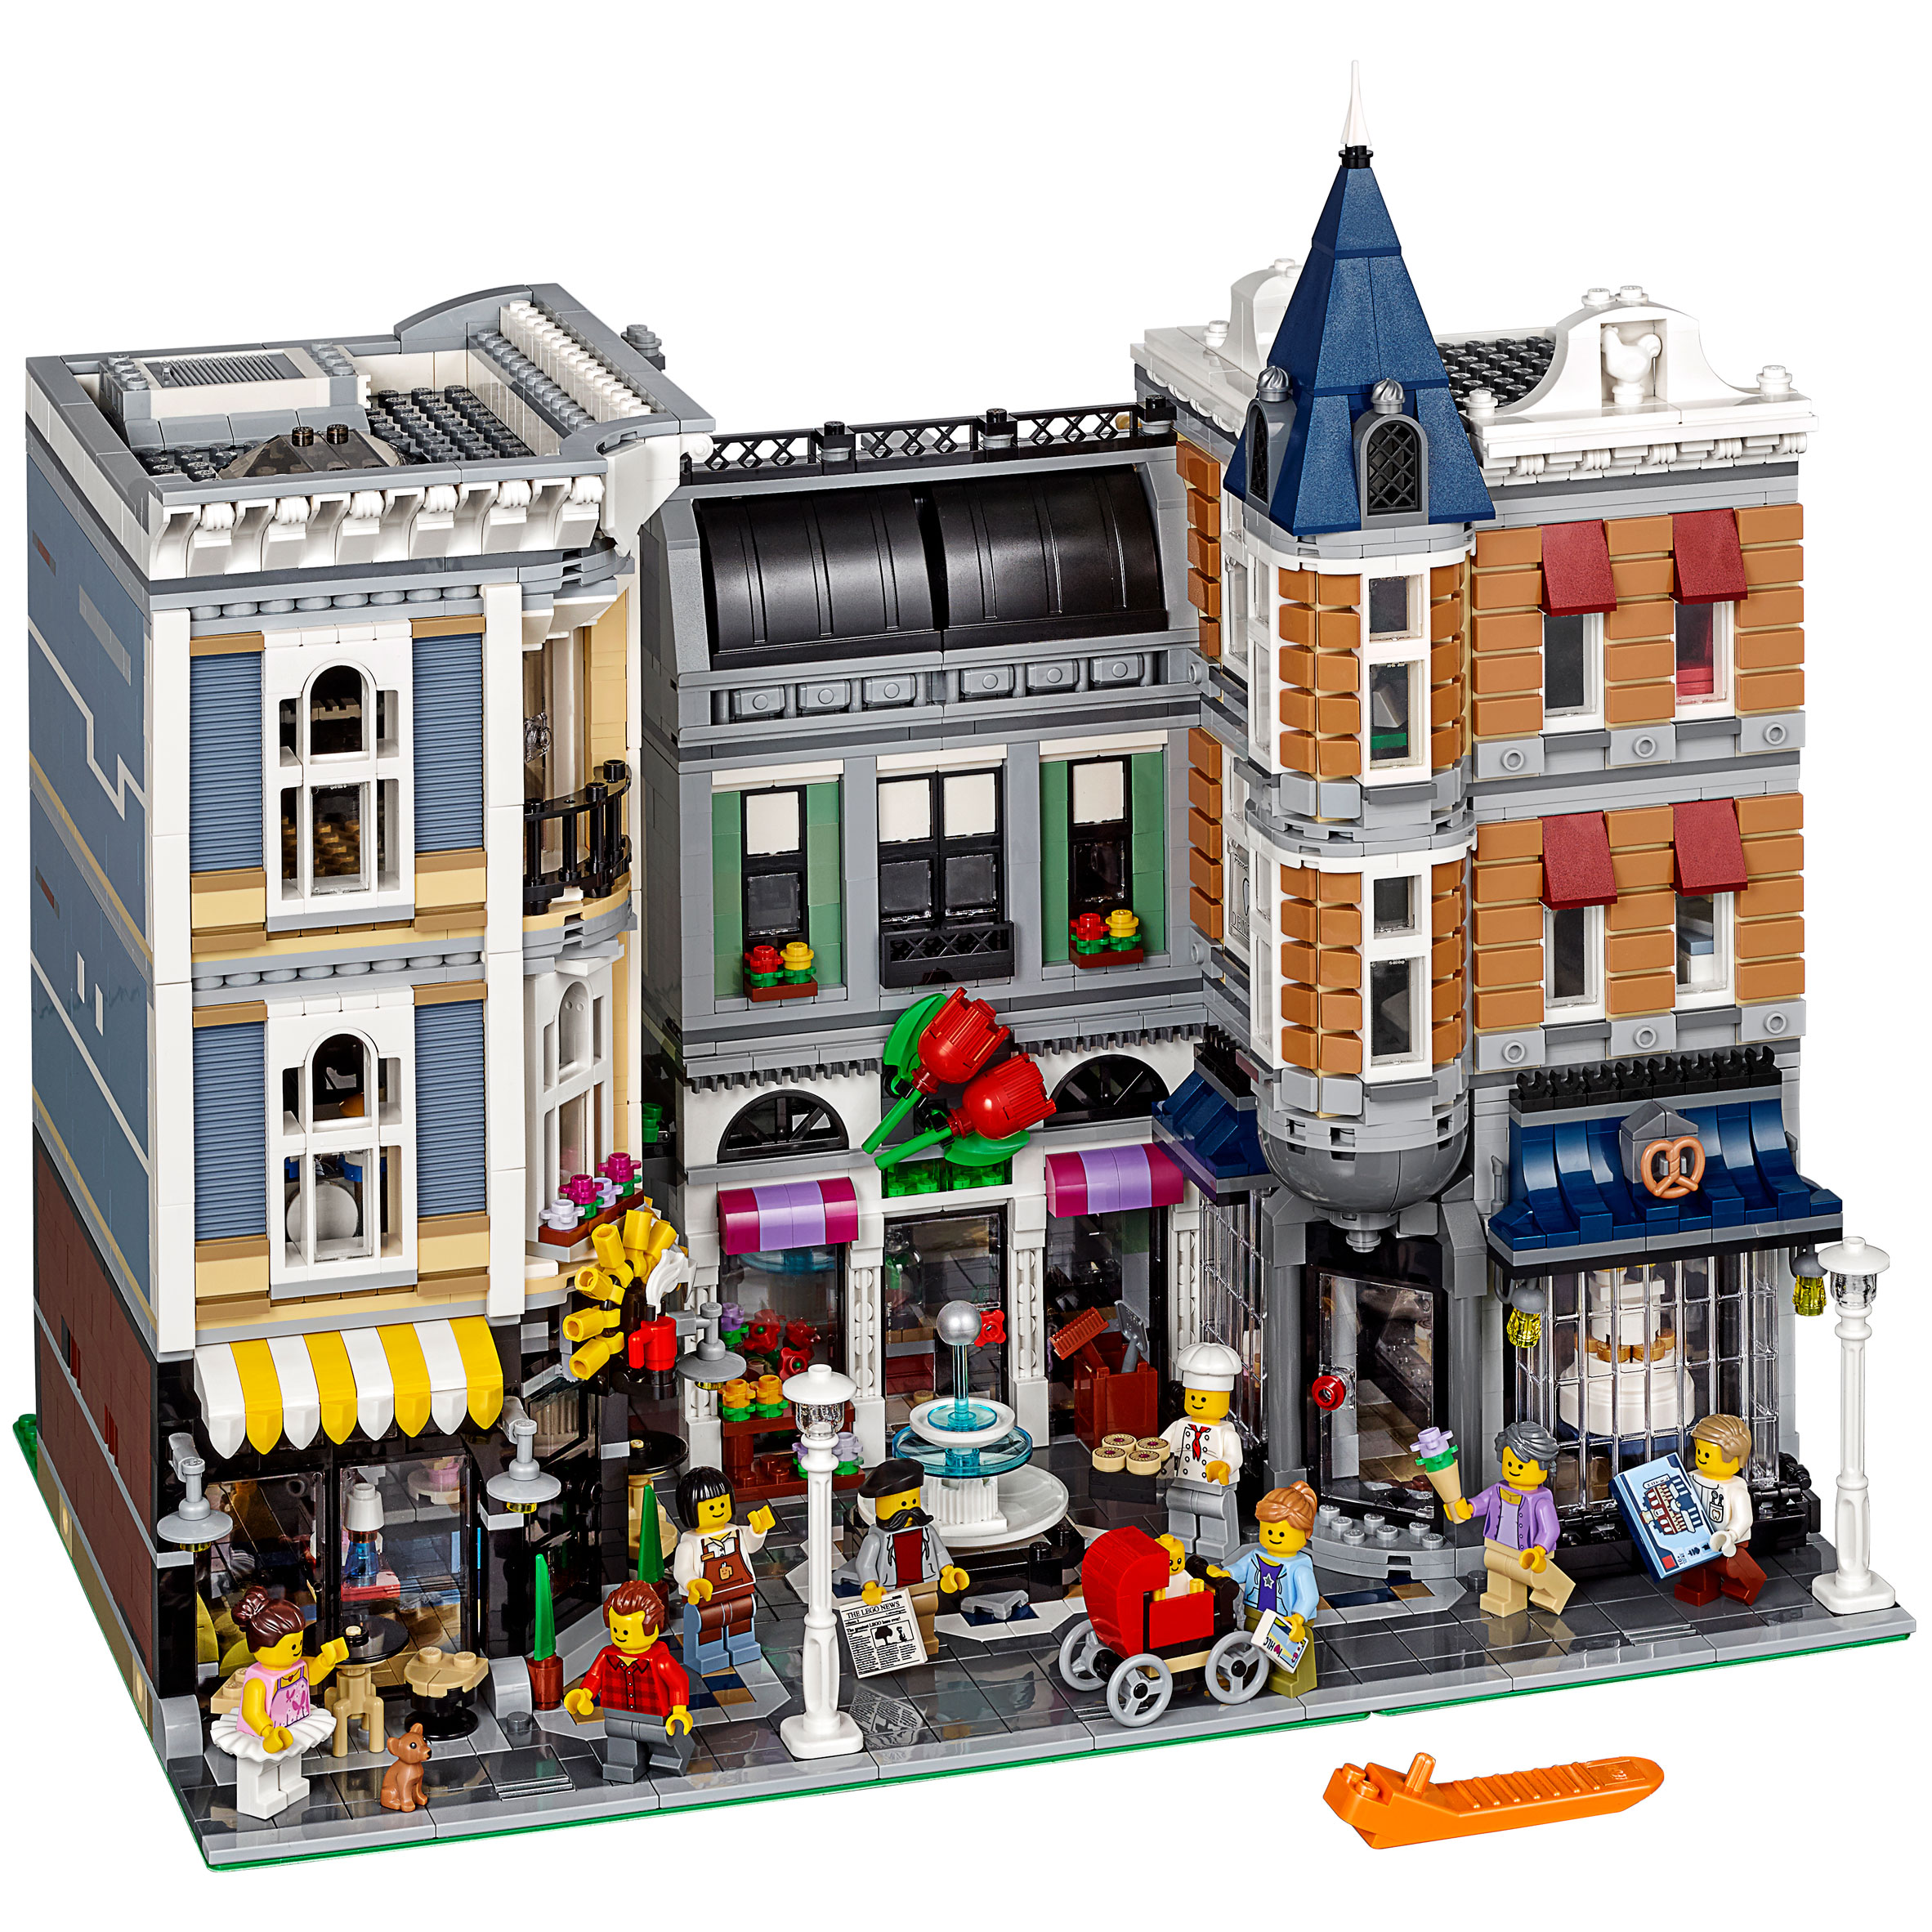 Assembly Square by Lego